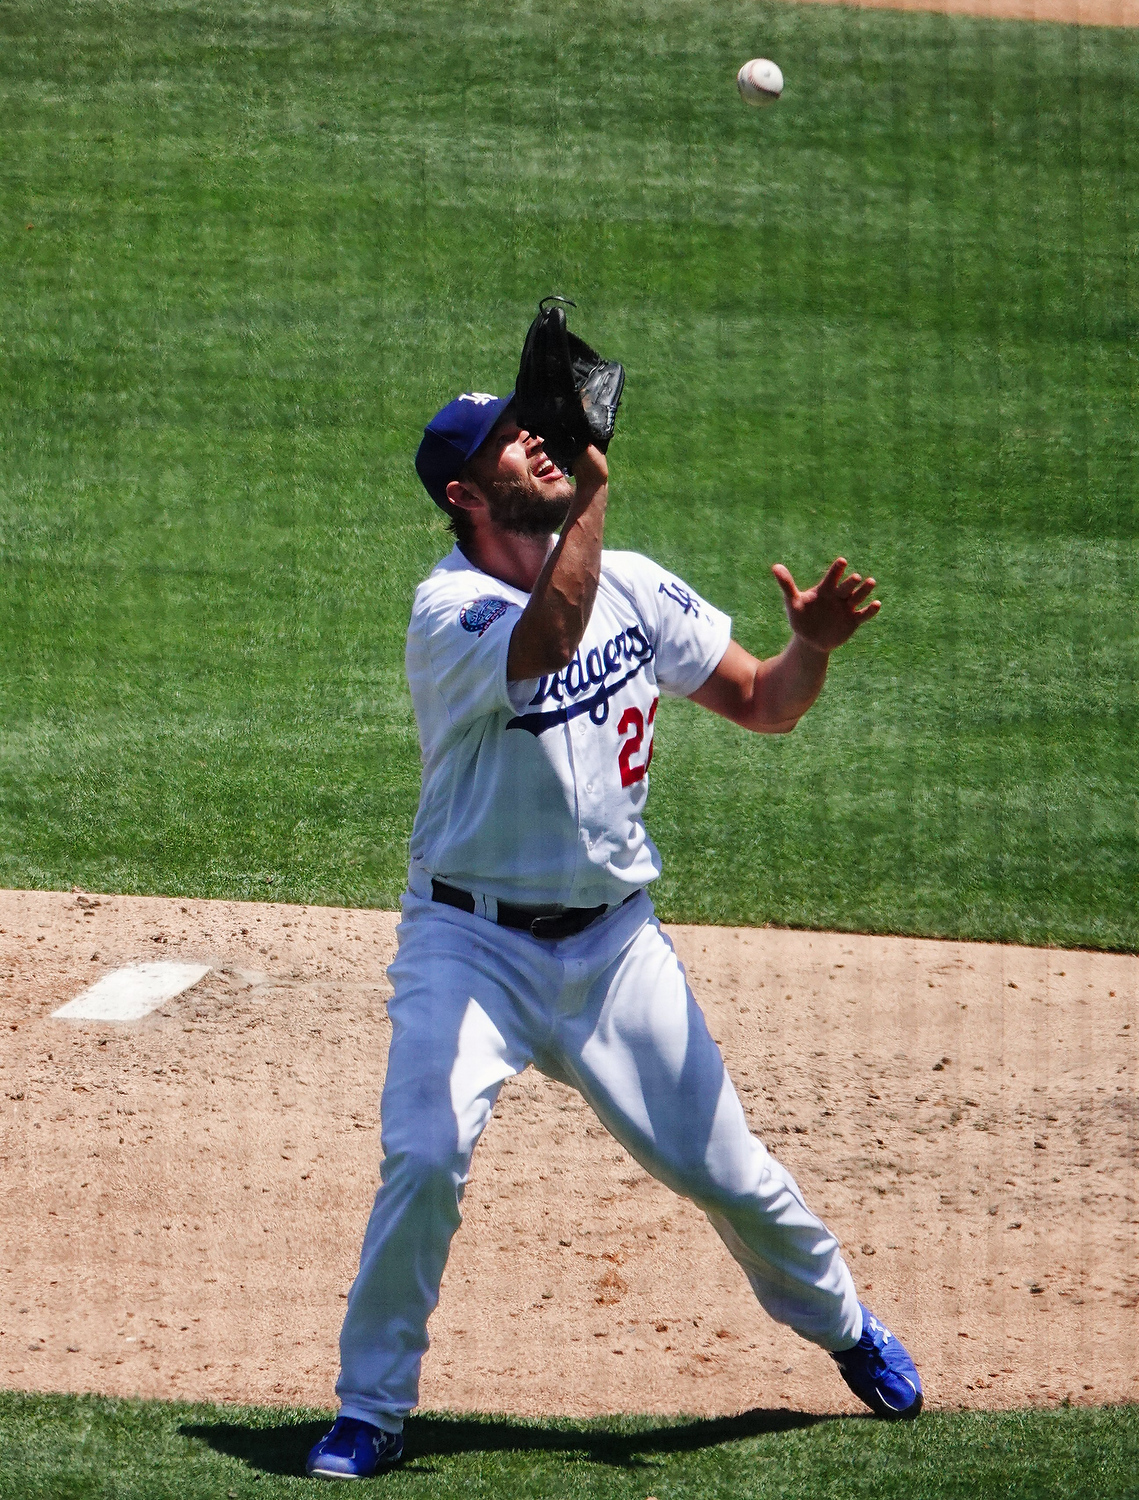 paul-gero-2018_0628_Dodgers_045_E.JPG